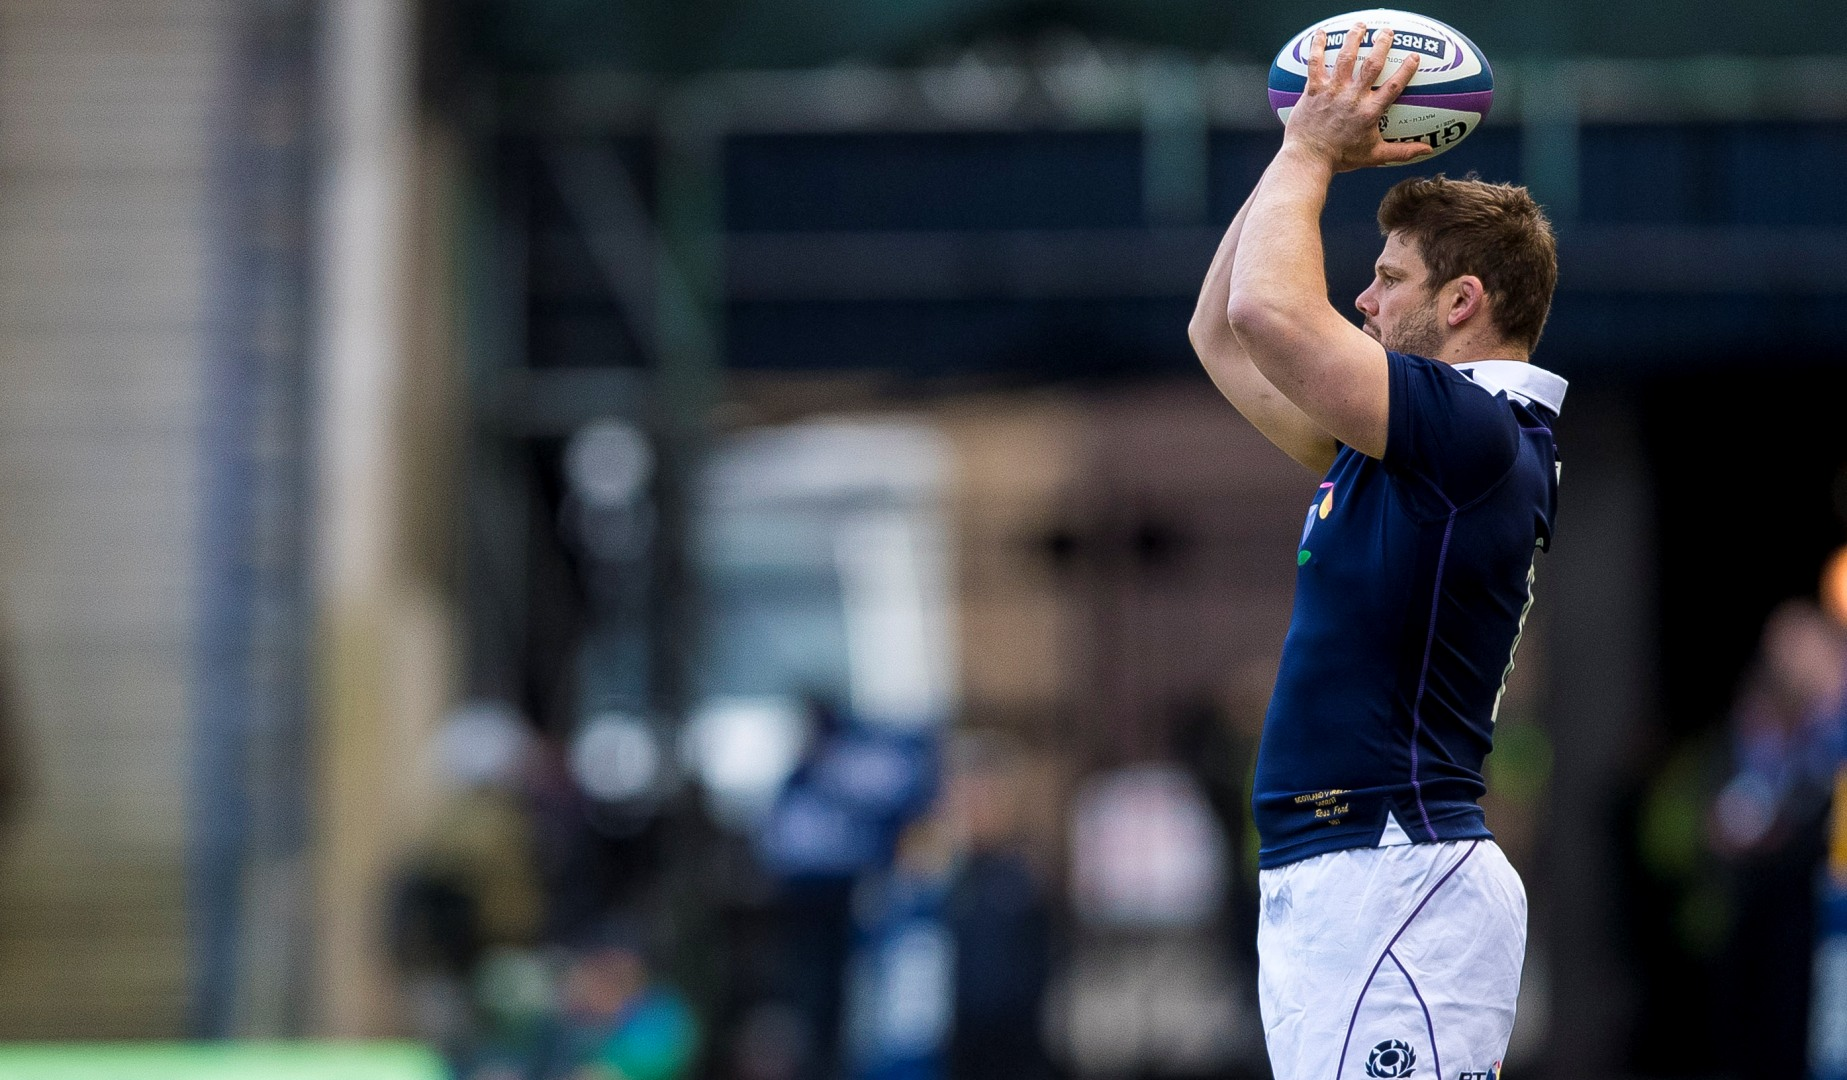 LionsWatch: Cotter starts with Ford for Italy contest